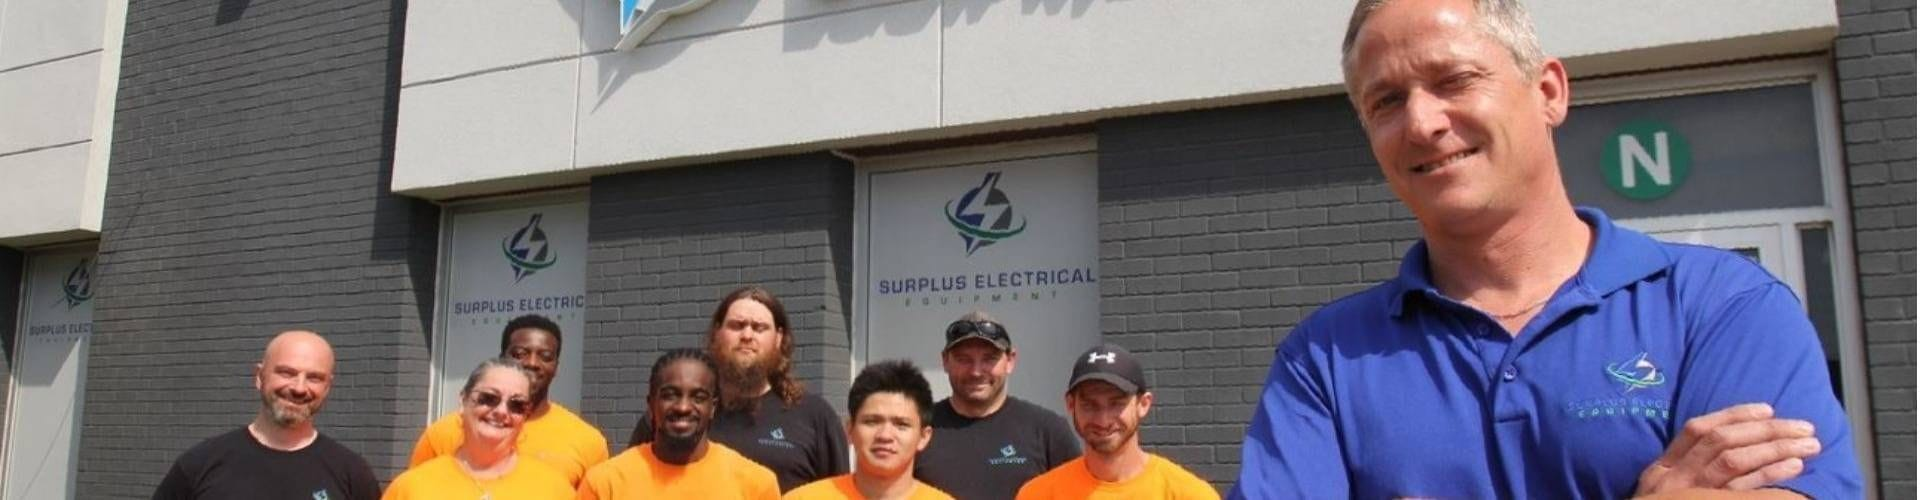 About Surplus Electrical Equipment